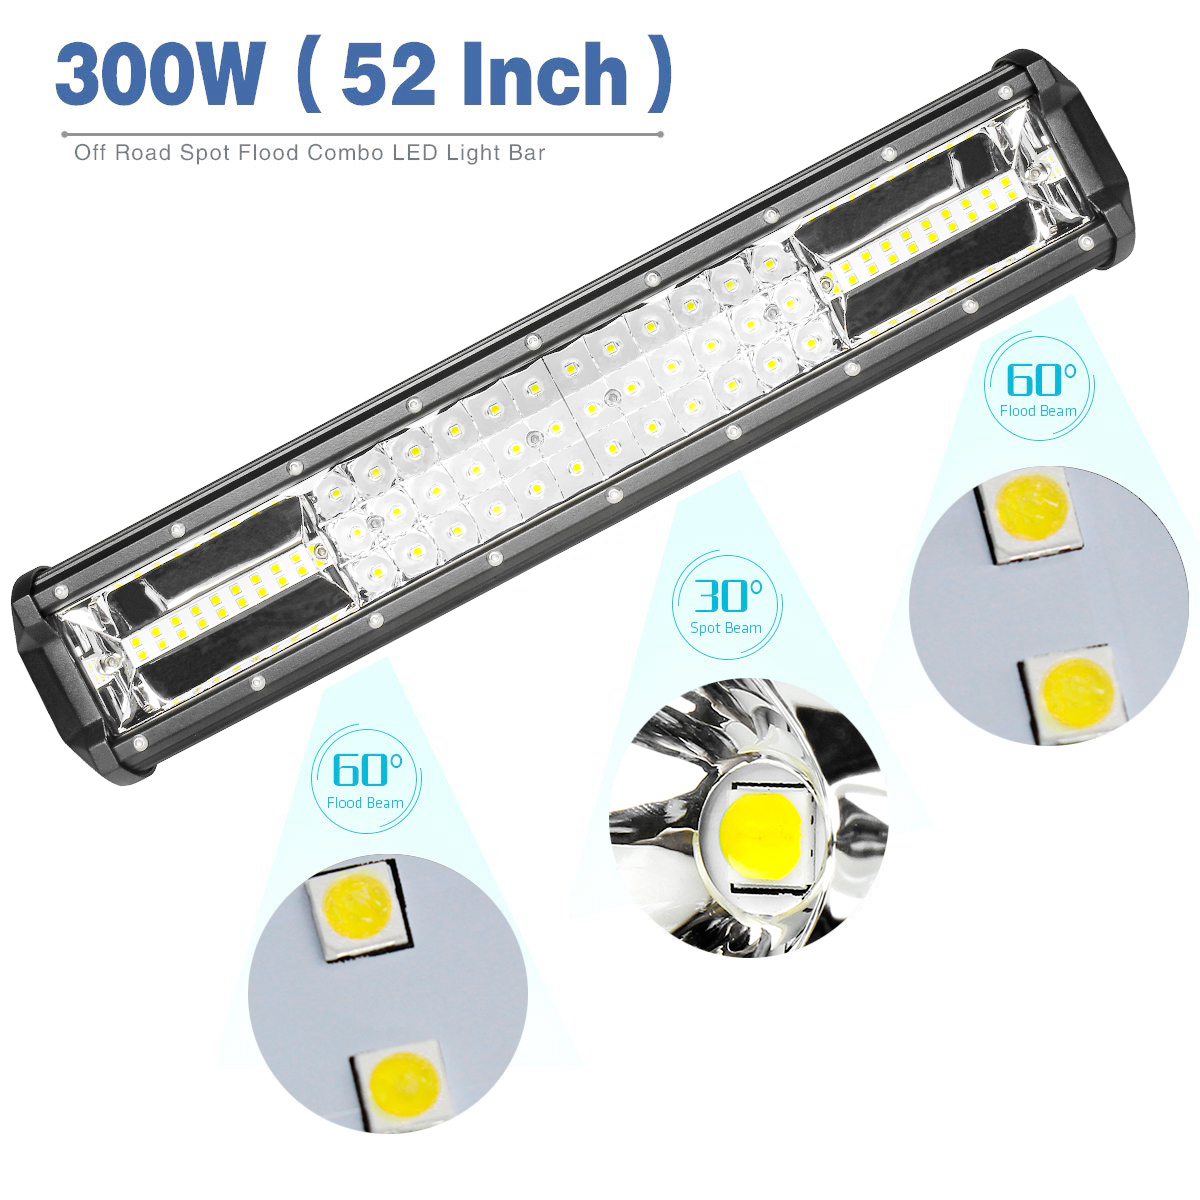 42 Inch 2376W Tri-Row LED Work light bar Combo For Offroad Jeep ...